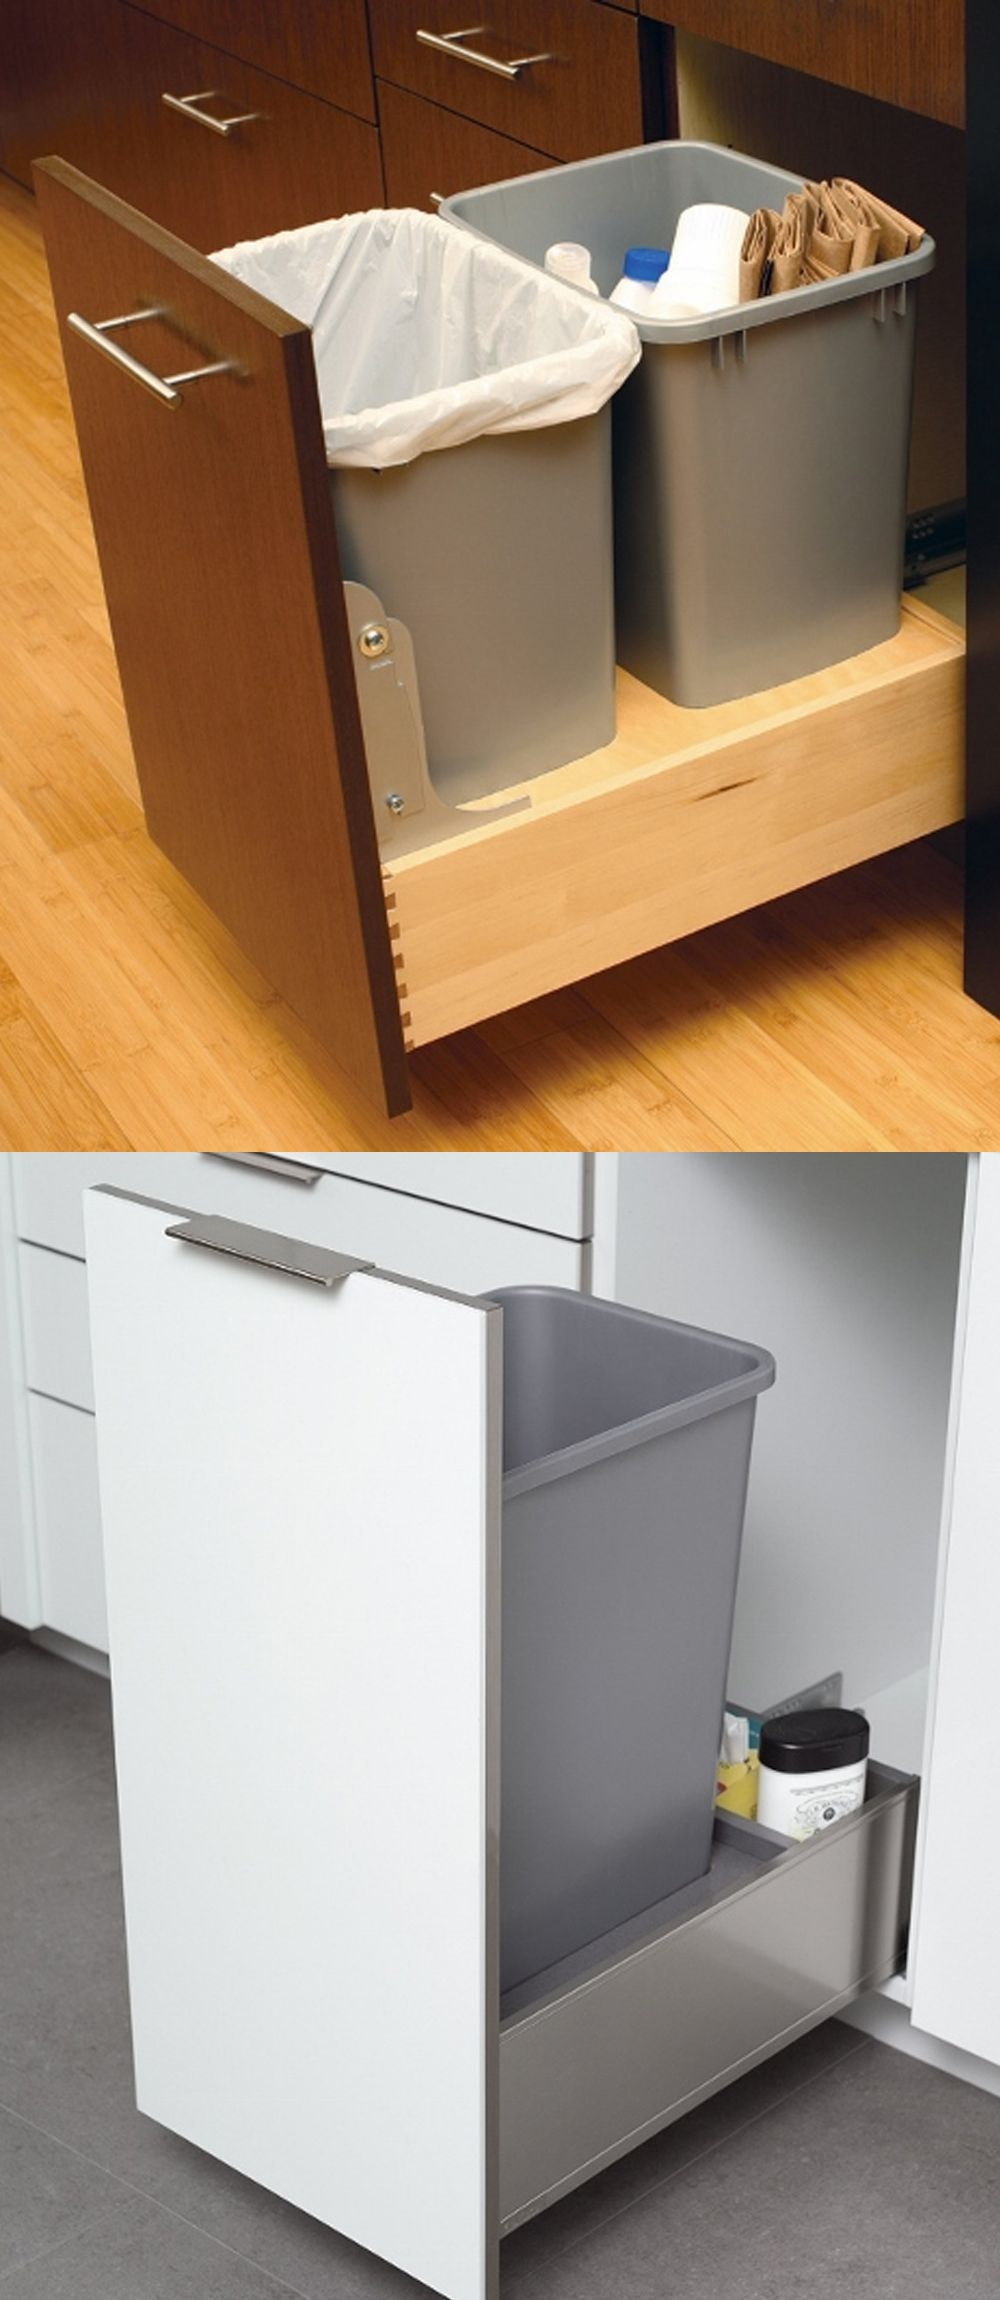 Hands Free Trash Recycling Cabinets A Simple Solution To A